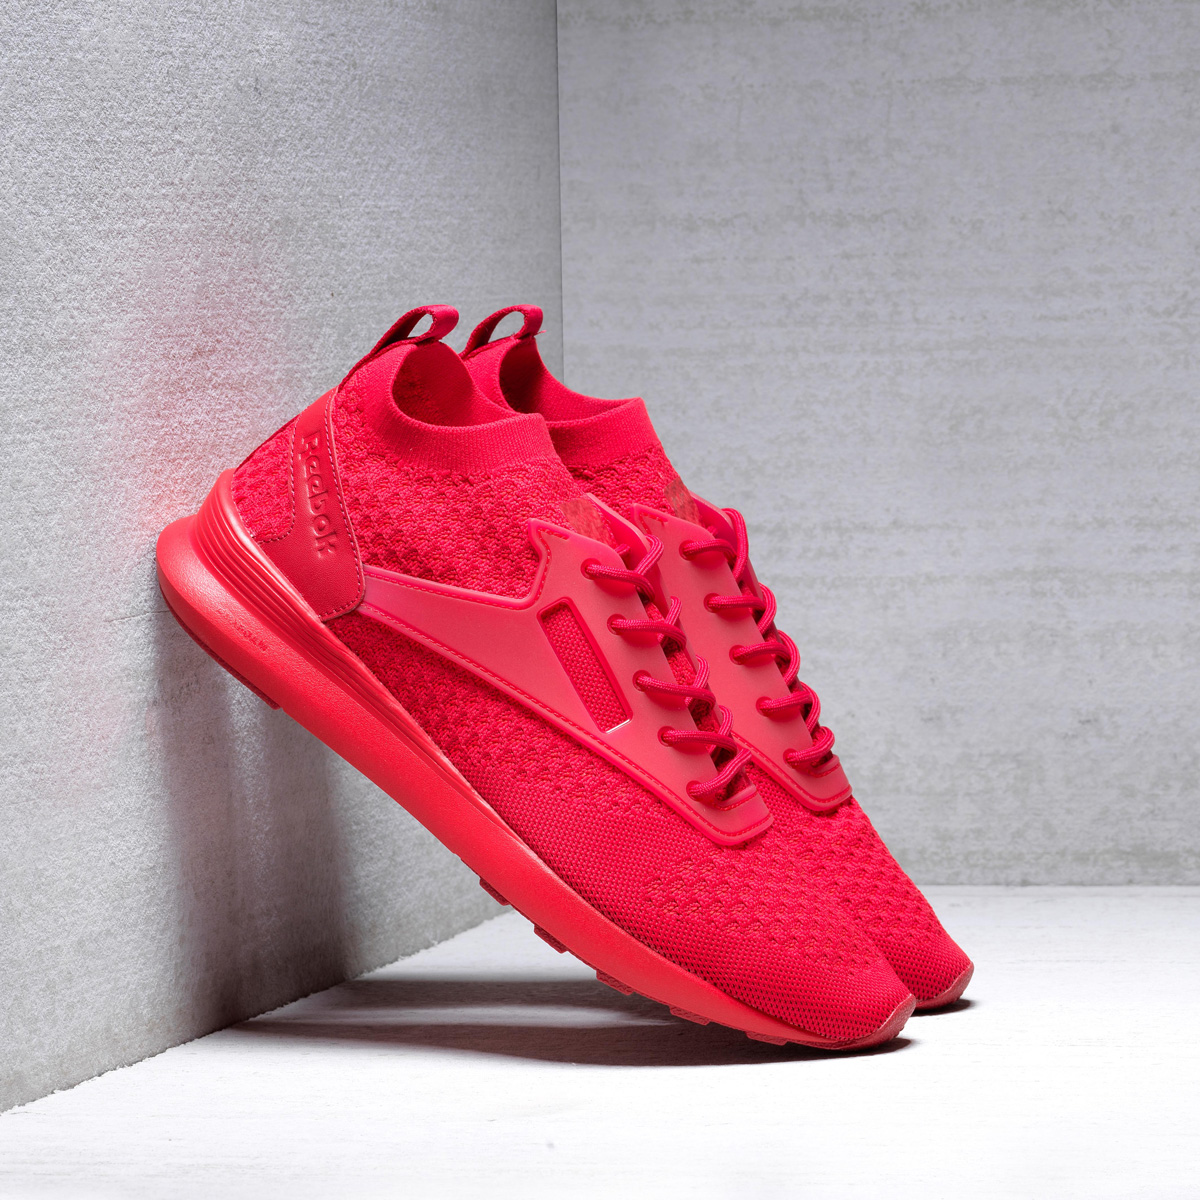 Atmos Pink Reebok Zoku Runner Ultk Is